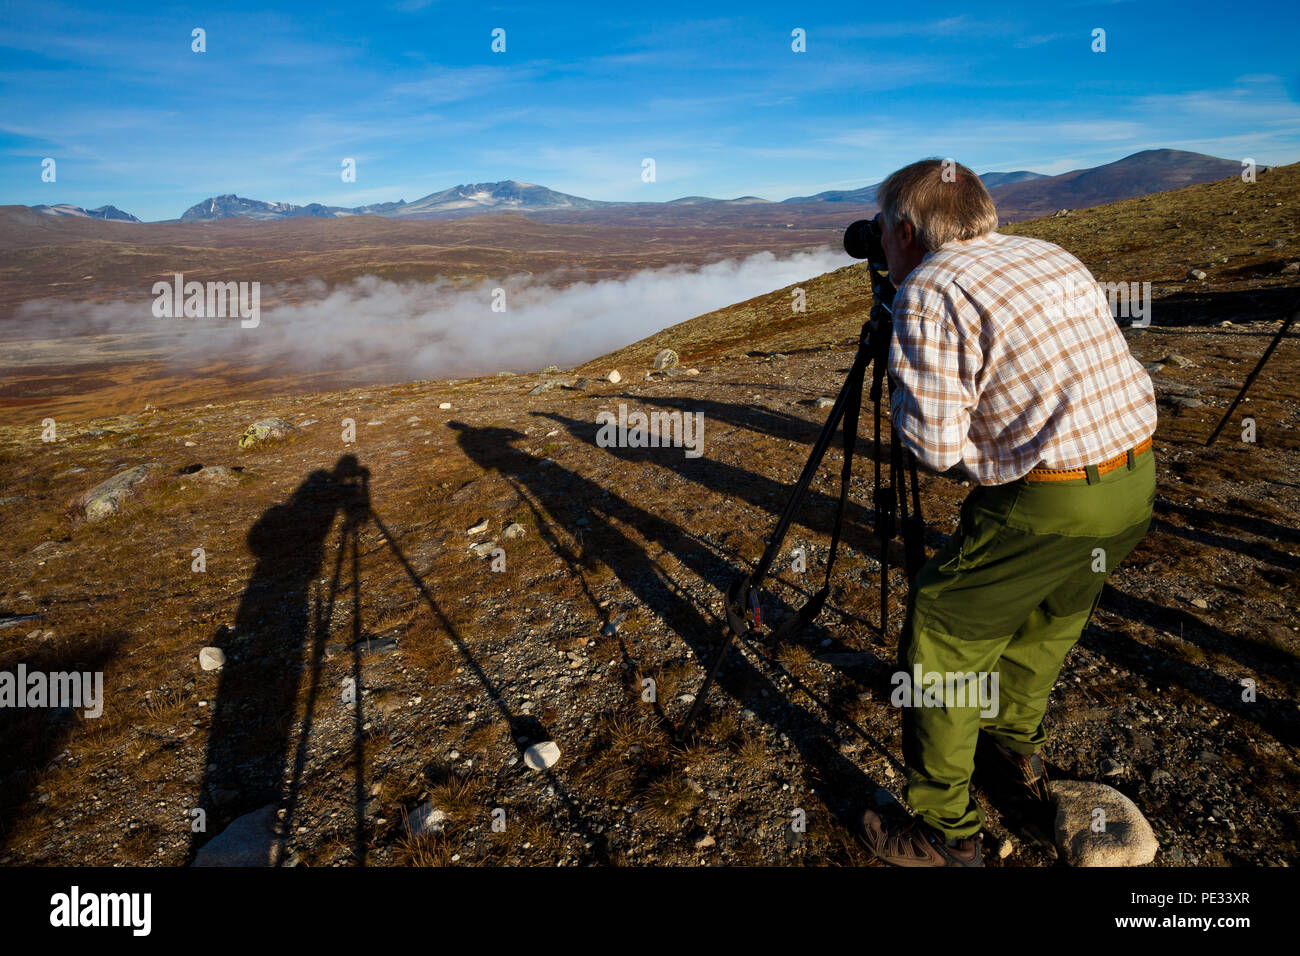 An outdoor photographer is taking pictures at View Point Snøhetta in Dovrefjell national park, Dovre, Norway. - Stock Image